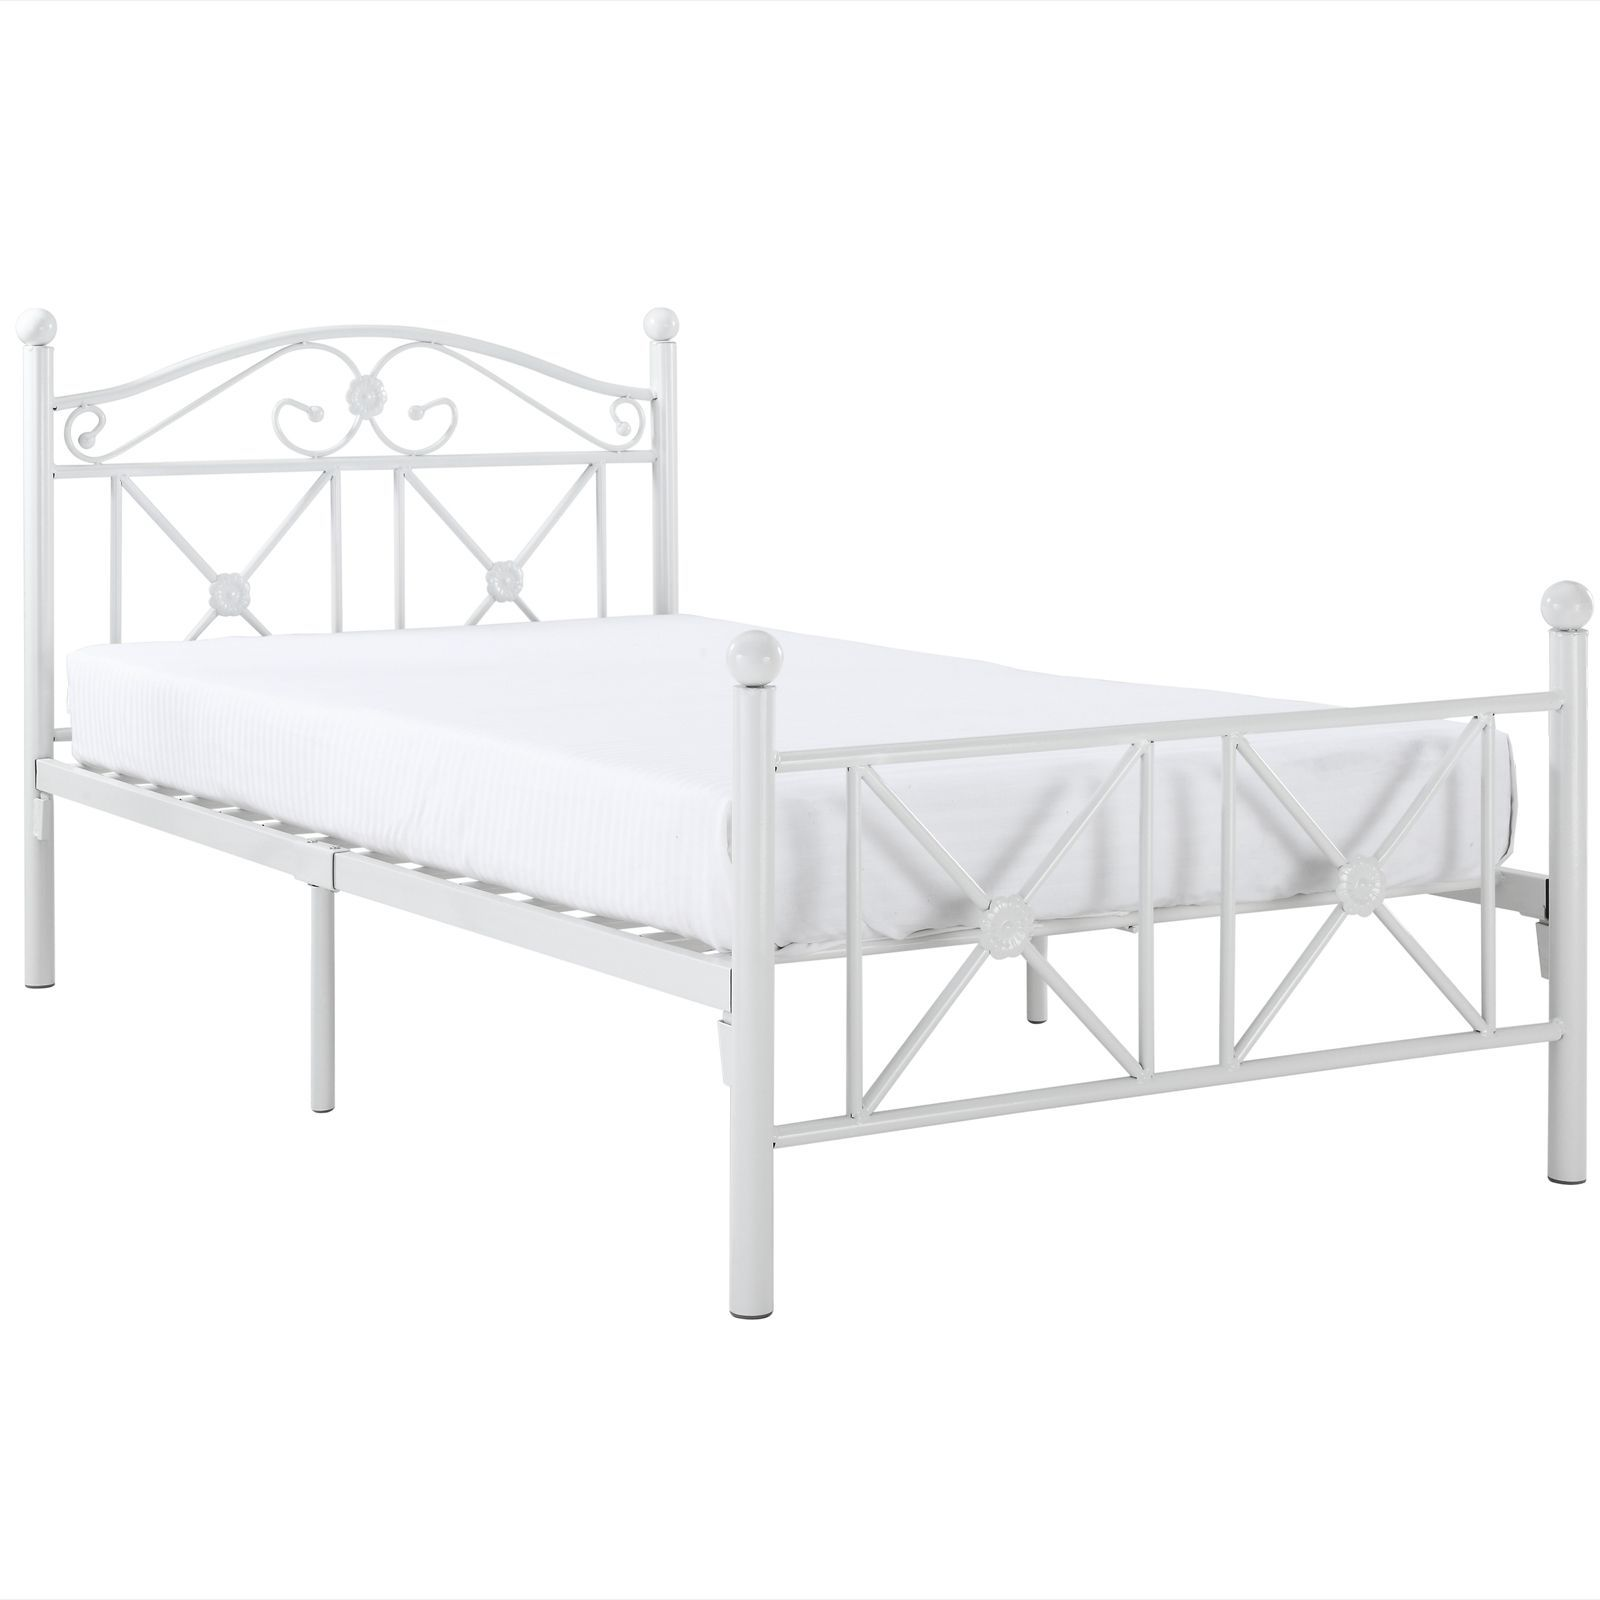 Modway Country Cottage Iron Twin Bed Frame, White